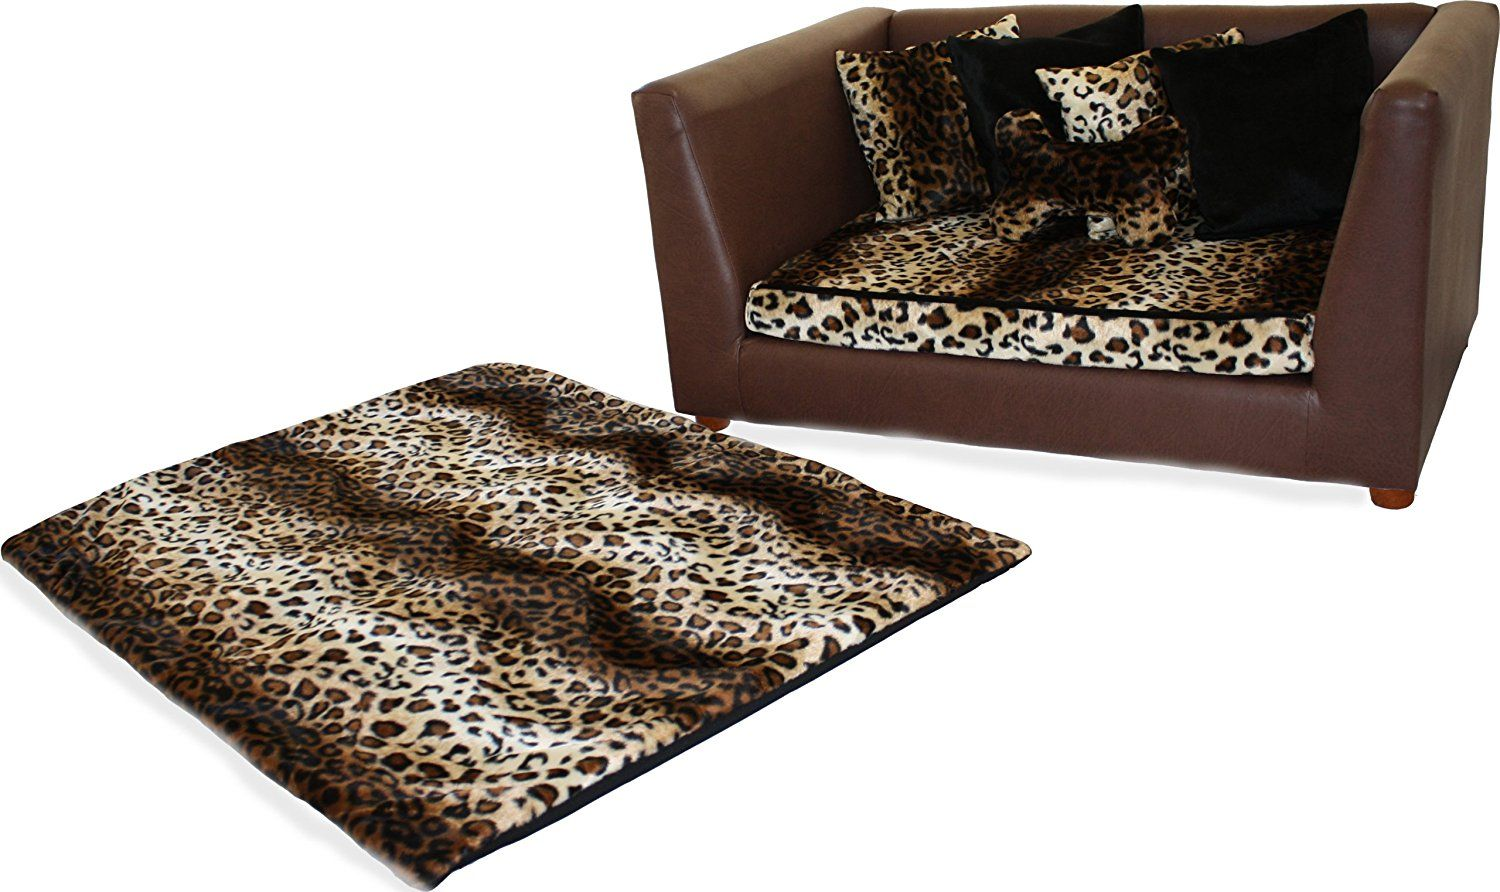 Dog beds that look like couches - 17 Best Images About Dog Beds That Look Like Furniture On